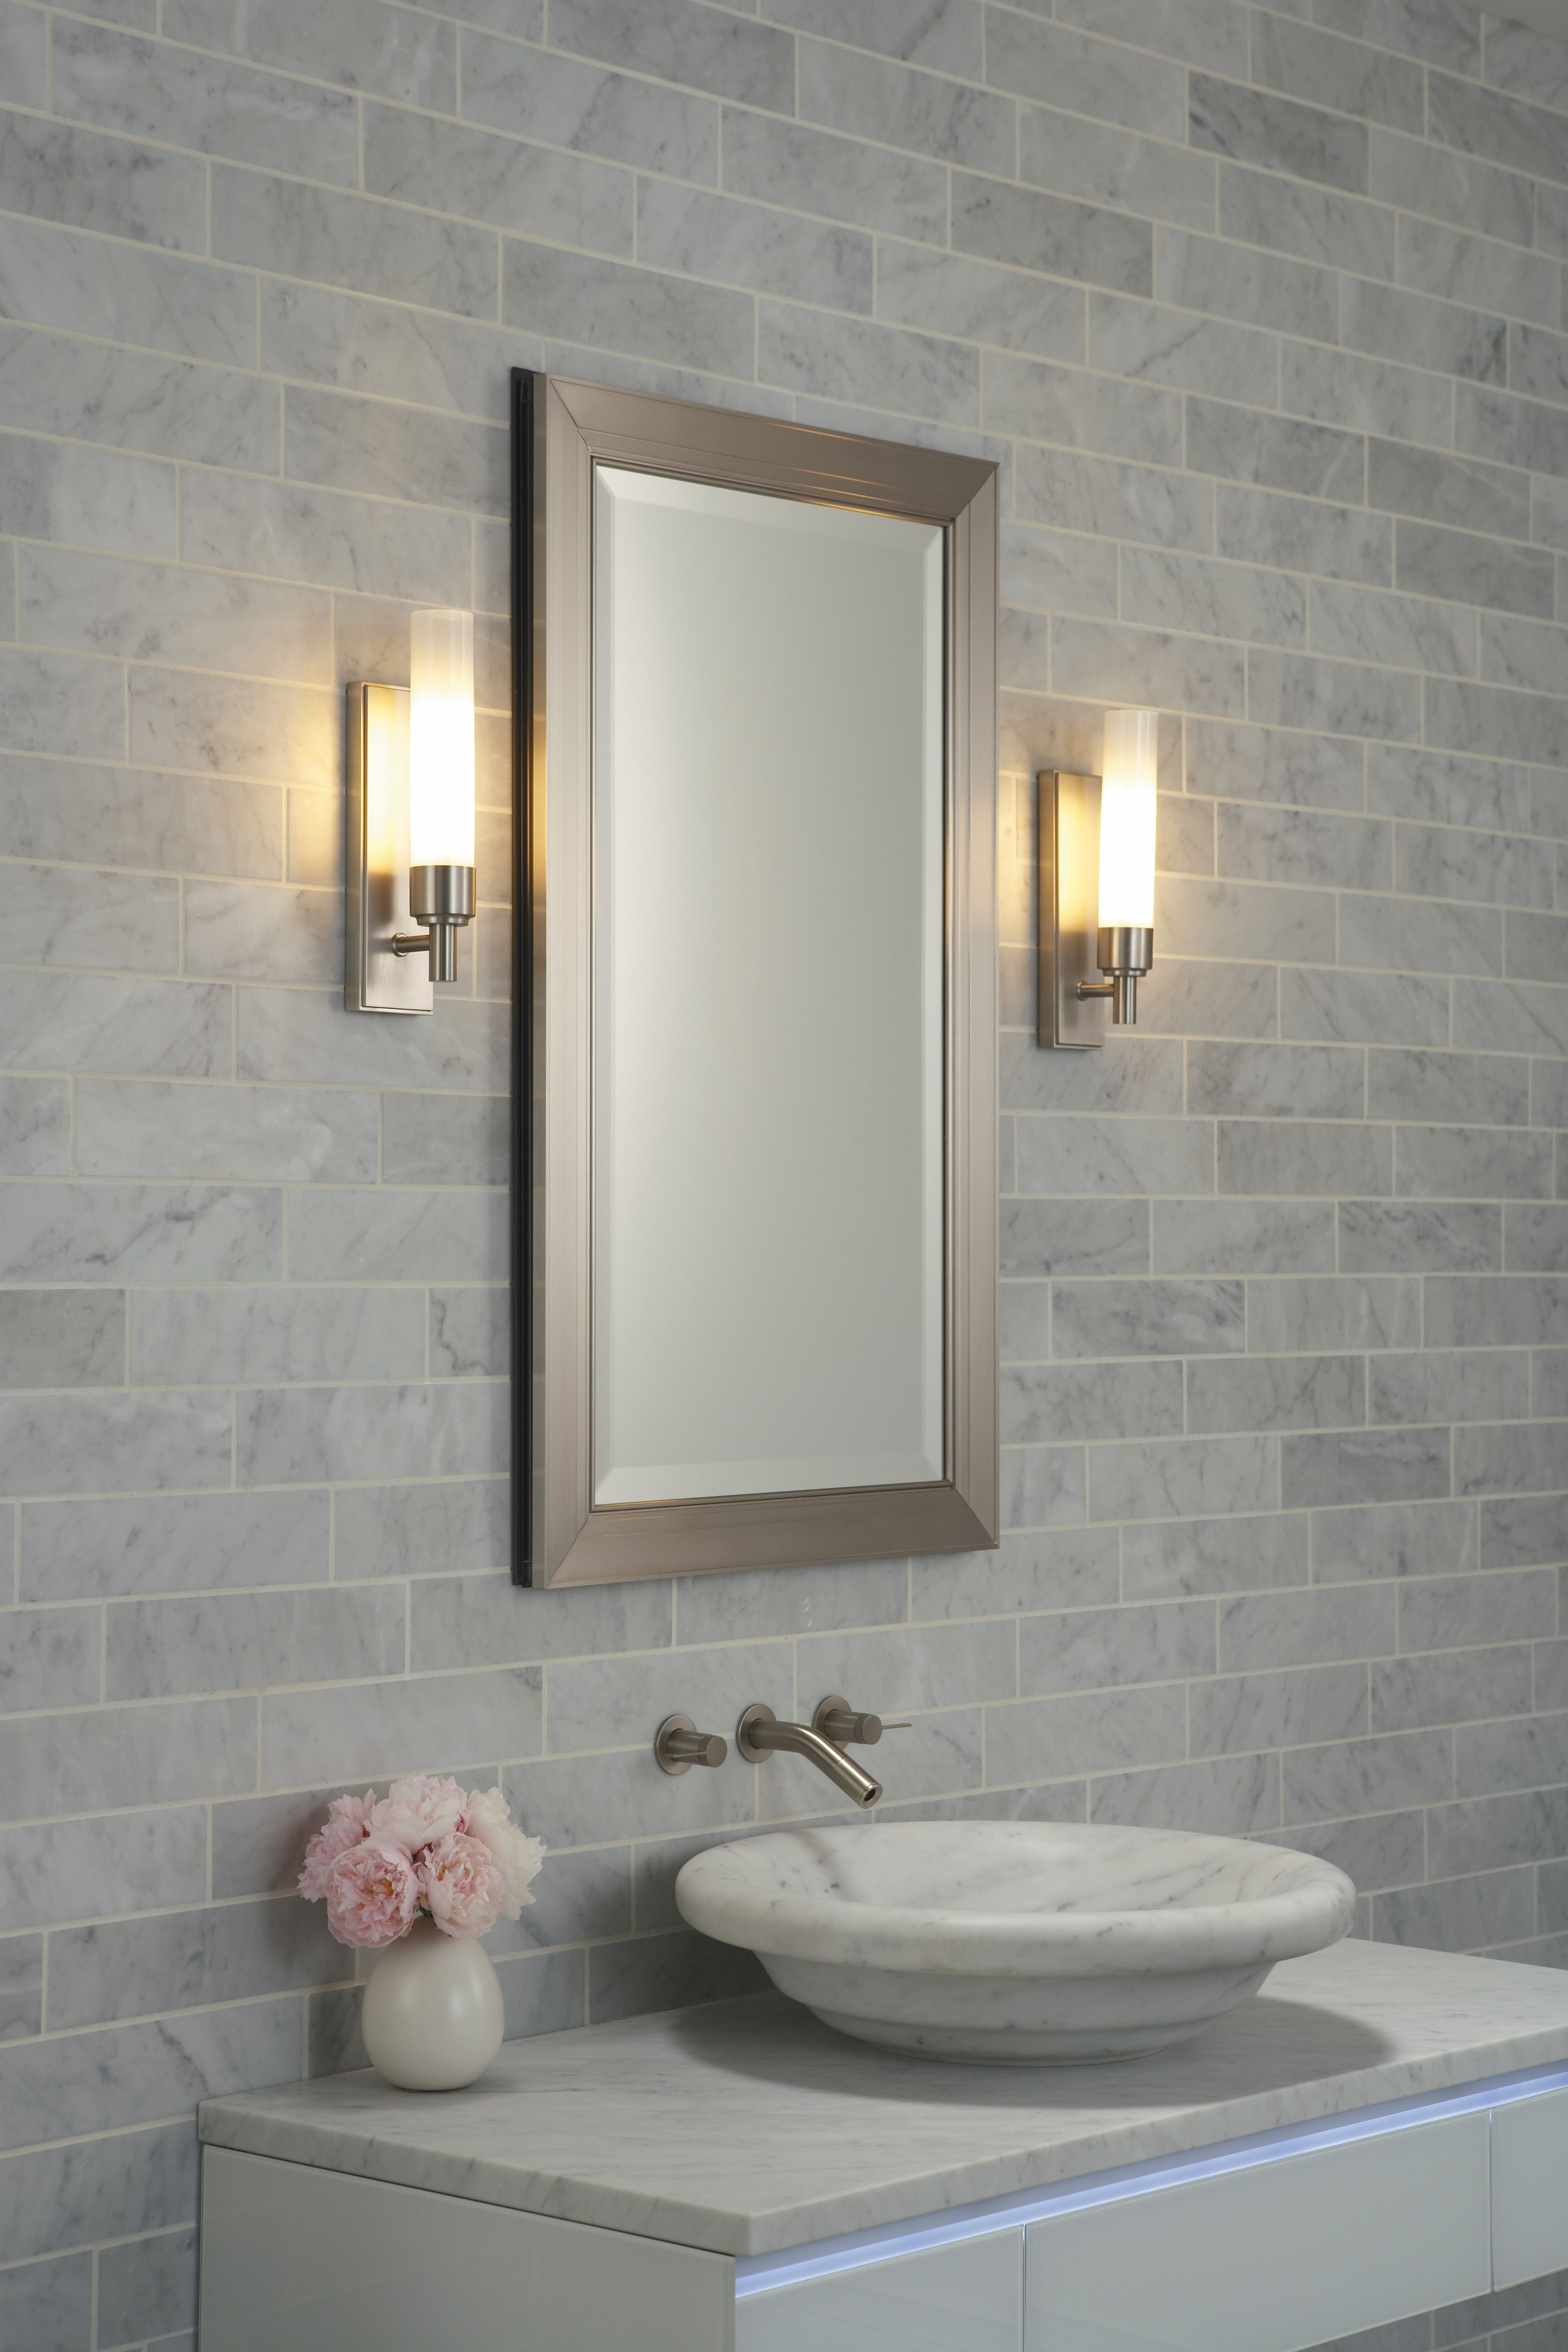 1 Mln Bathroom Tile Ideas Bathroom Wall Sconces Bathroom Wall Lights Bathroom Sconces